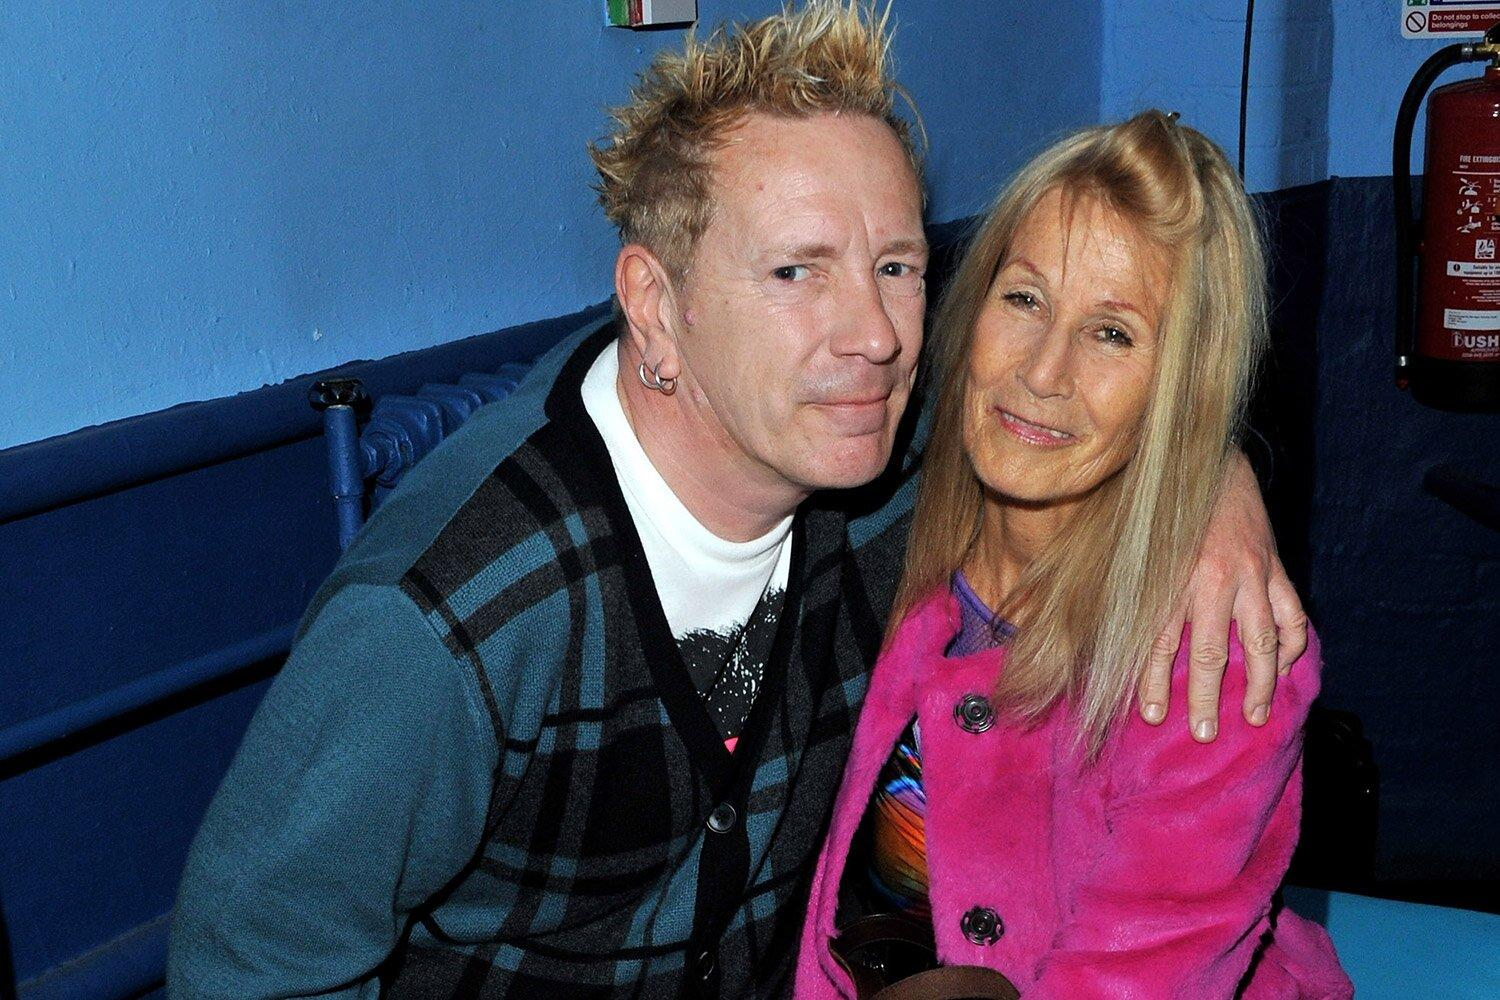 Sex Pistol Johnny Rotten cares for wife Nora full-time